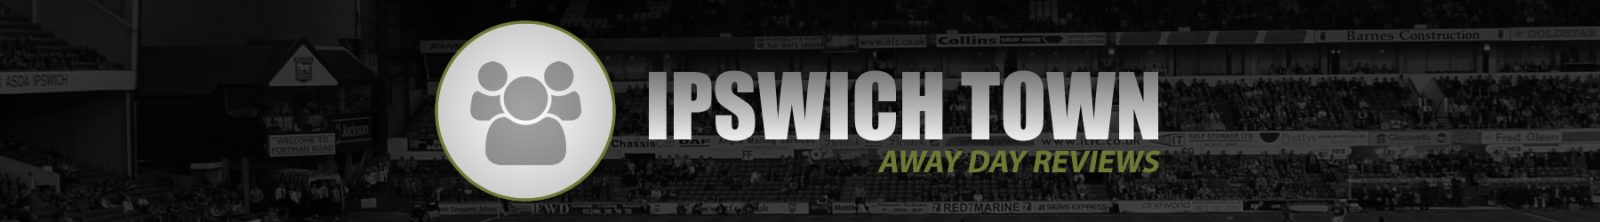 Review Ipswich Town